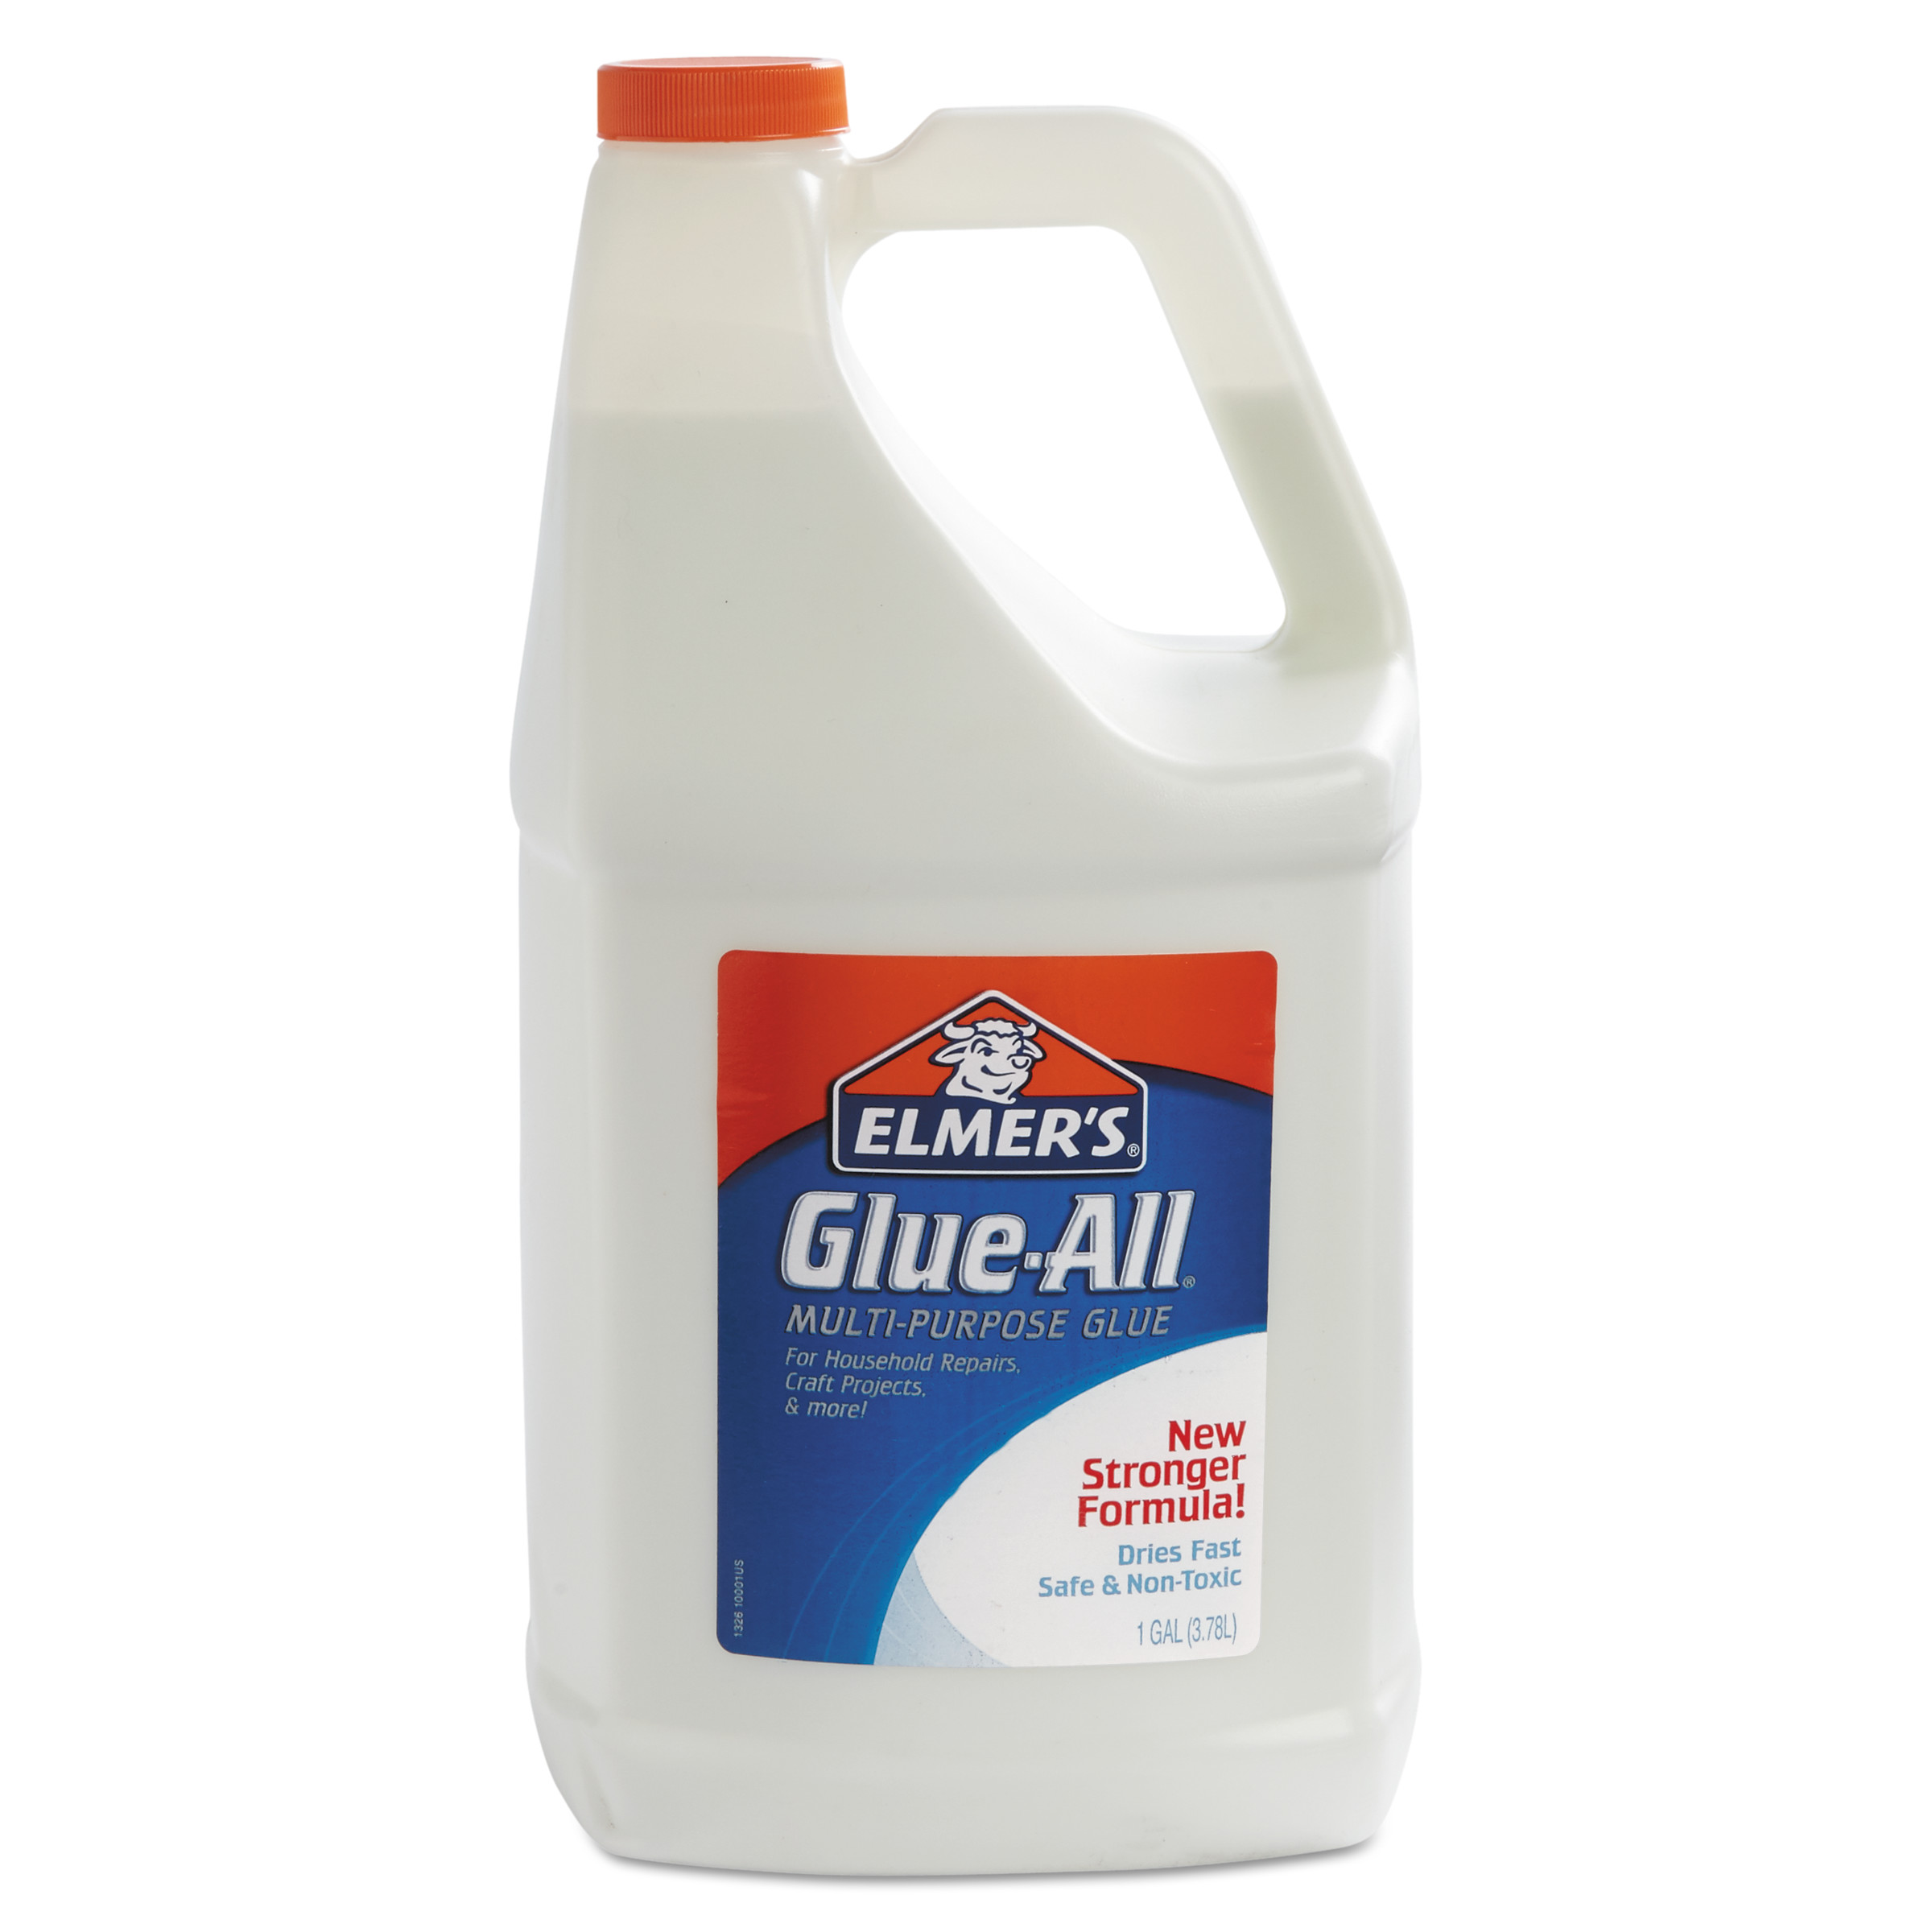 Elmer's Glue-All White Glue, Washable and Repositionable, 1 Gallon